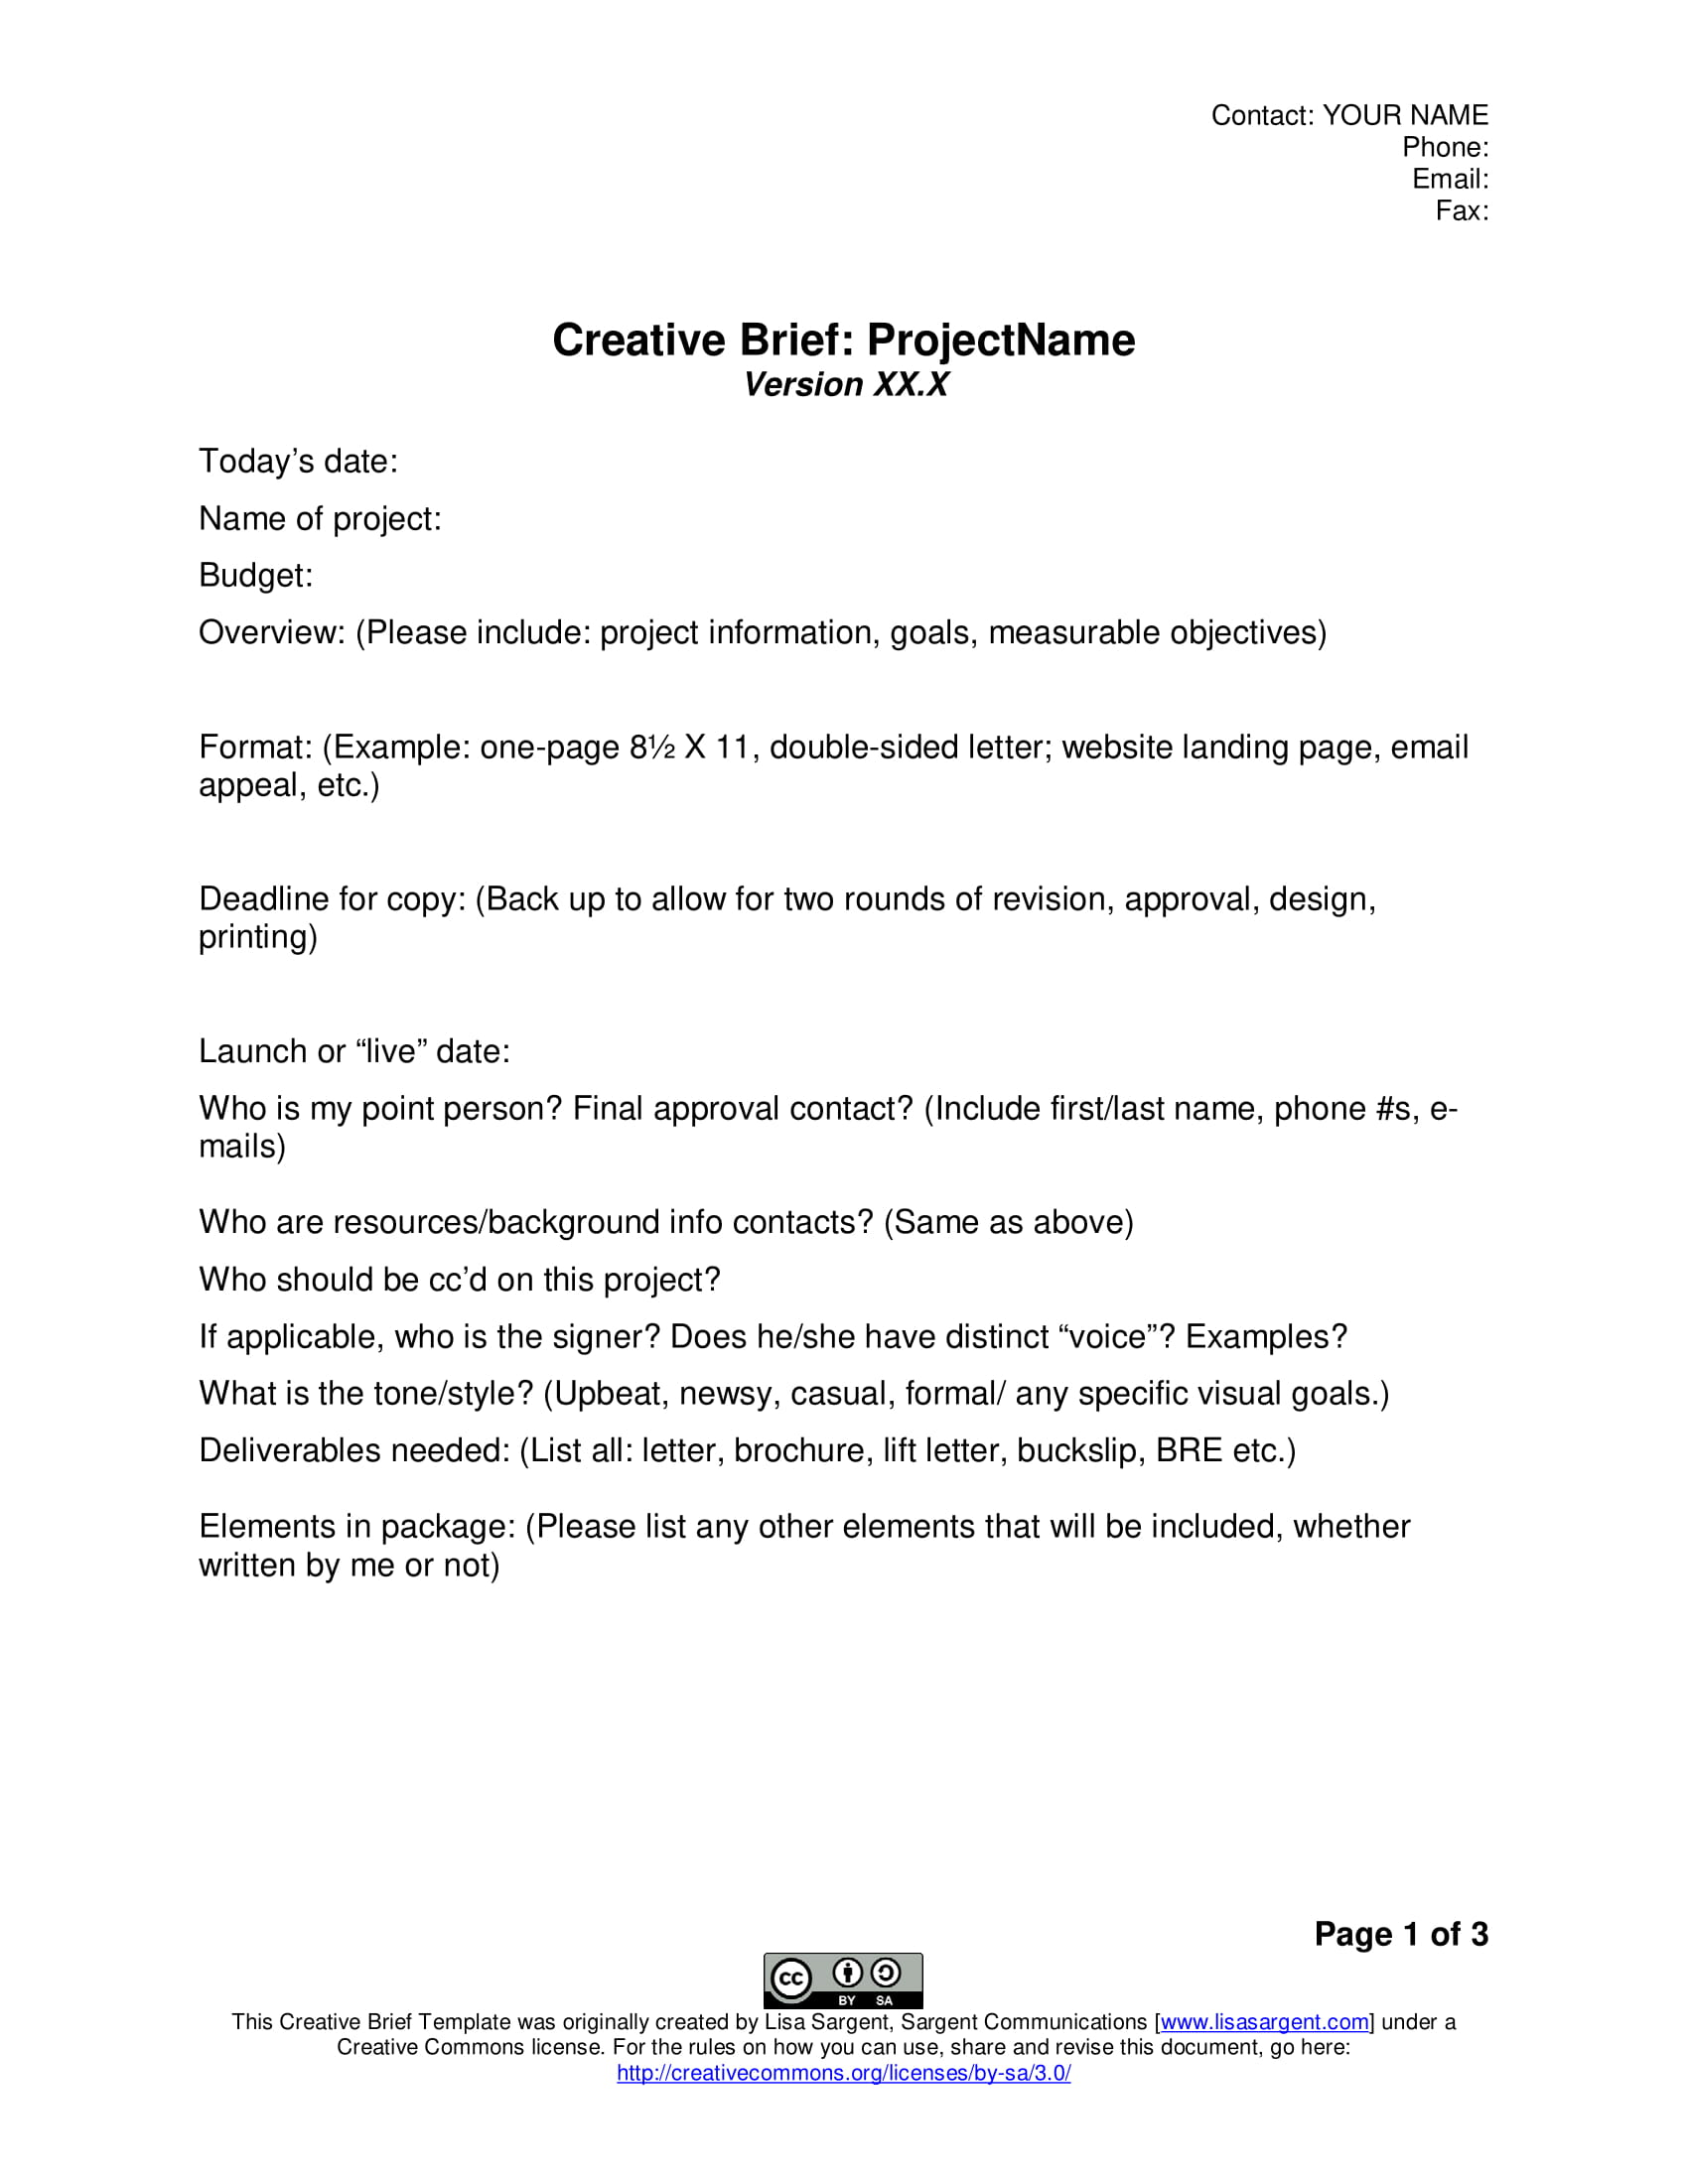 Examples of creative brief pdf